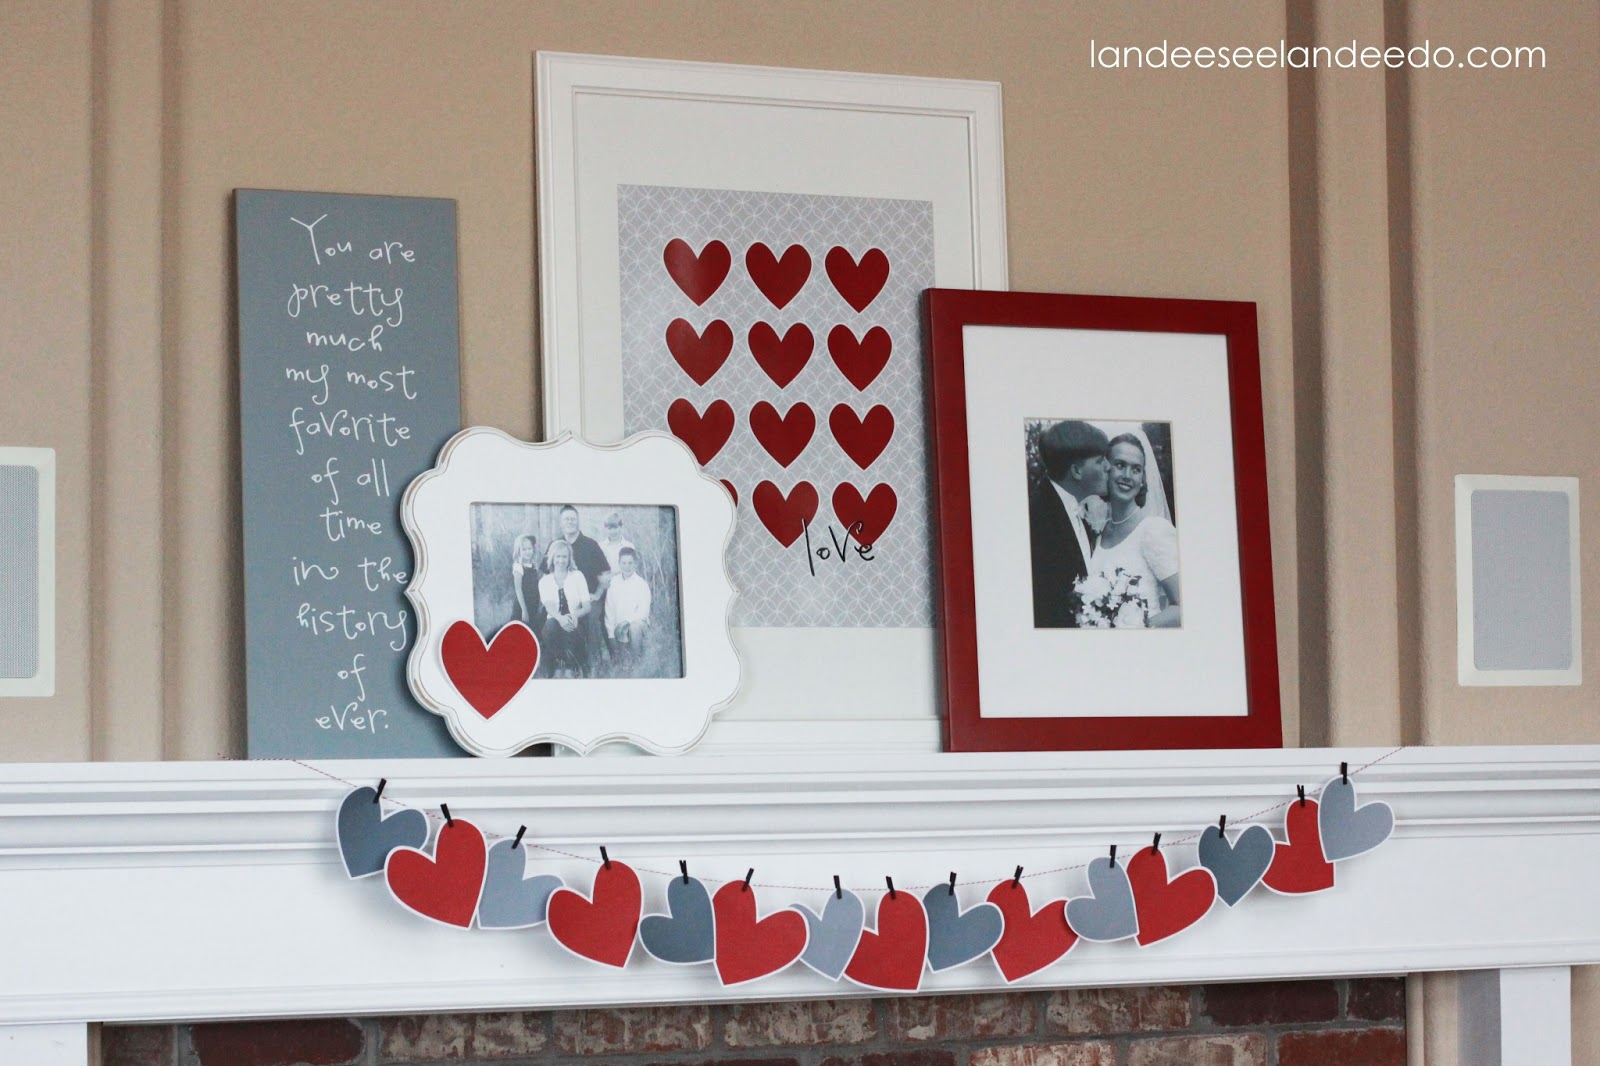 Valentine S Day Mantel Decor And Printable Landeelu Com Home Decorators Catalog Best Ideas of Home Decor and Design [homedecoratorscatalog.us]